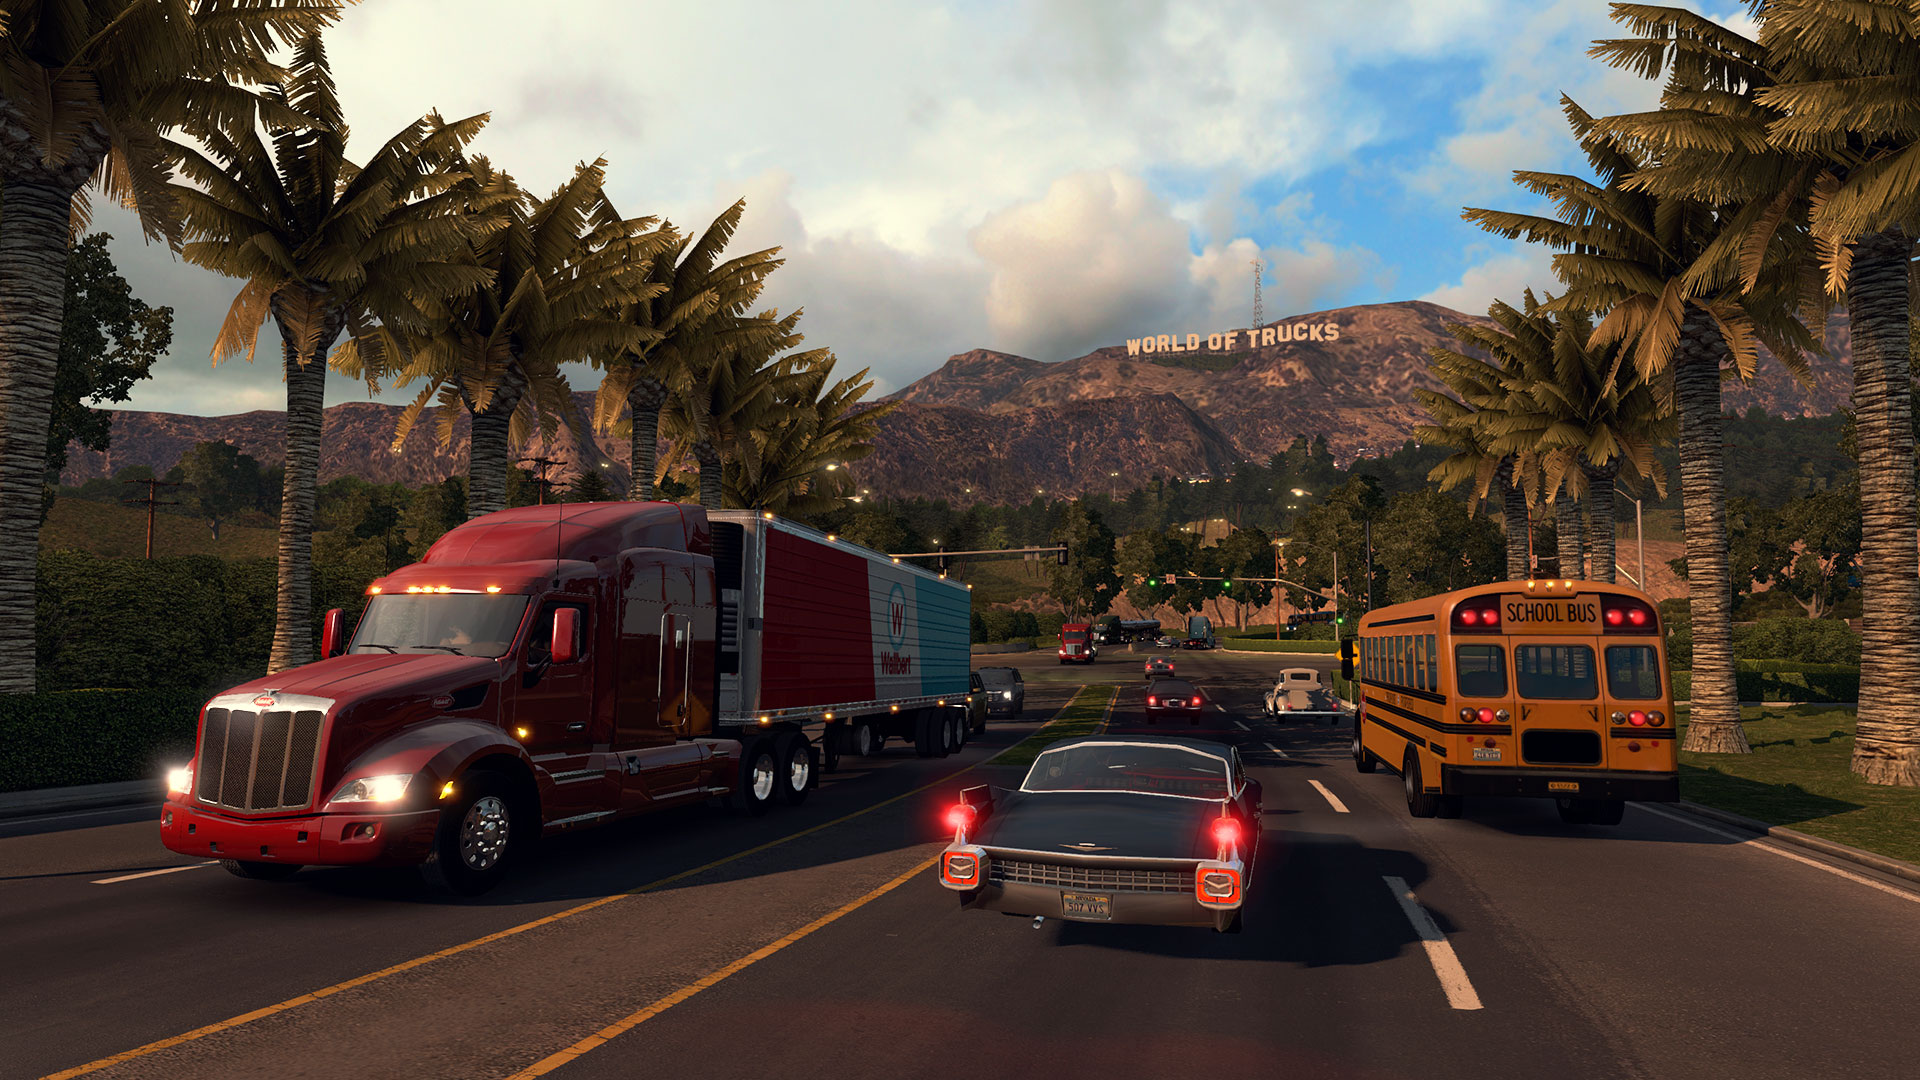 Download truck simulator 3d apk for android free | mob. Org.